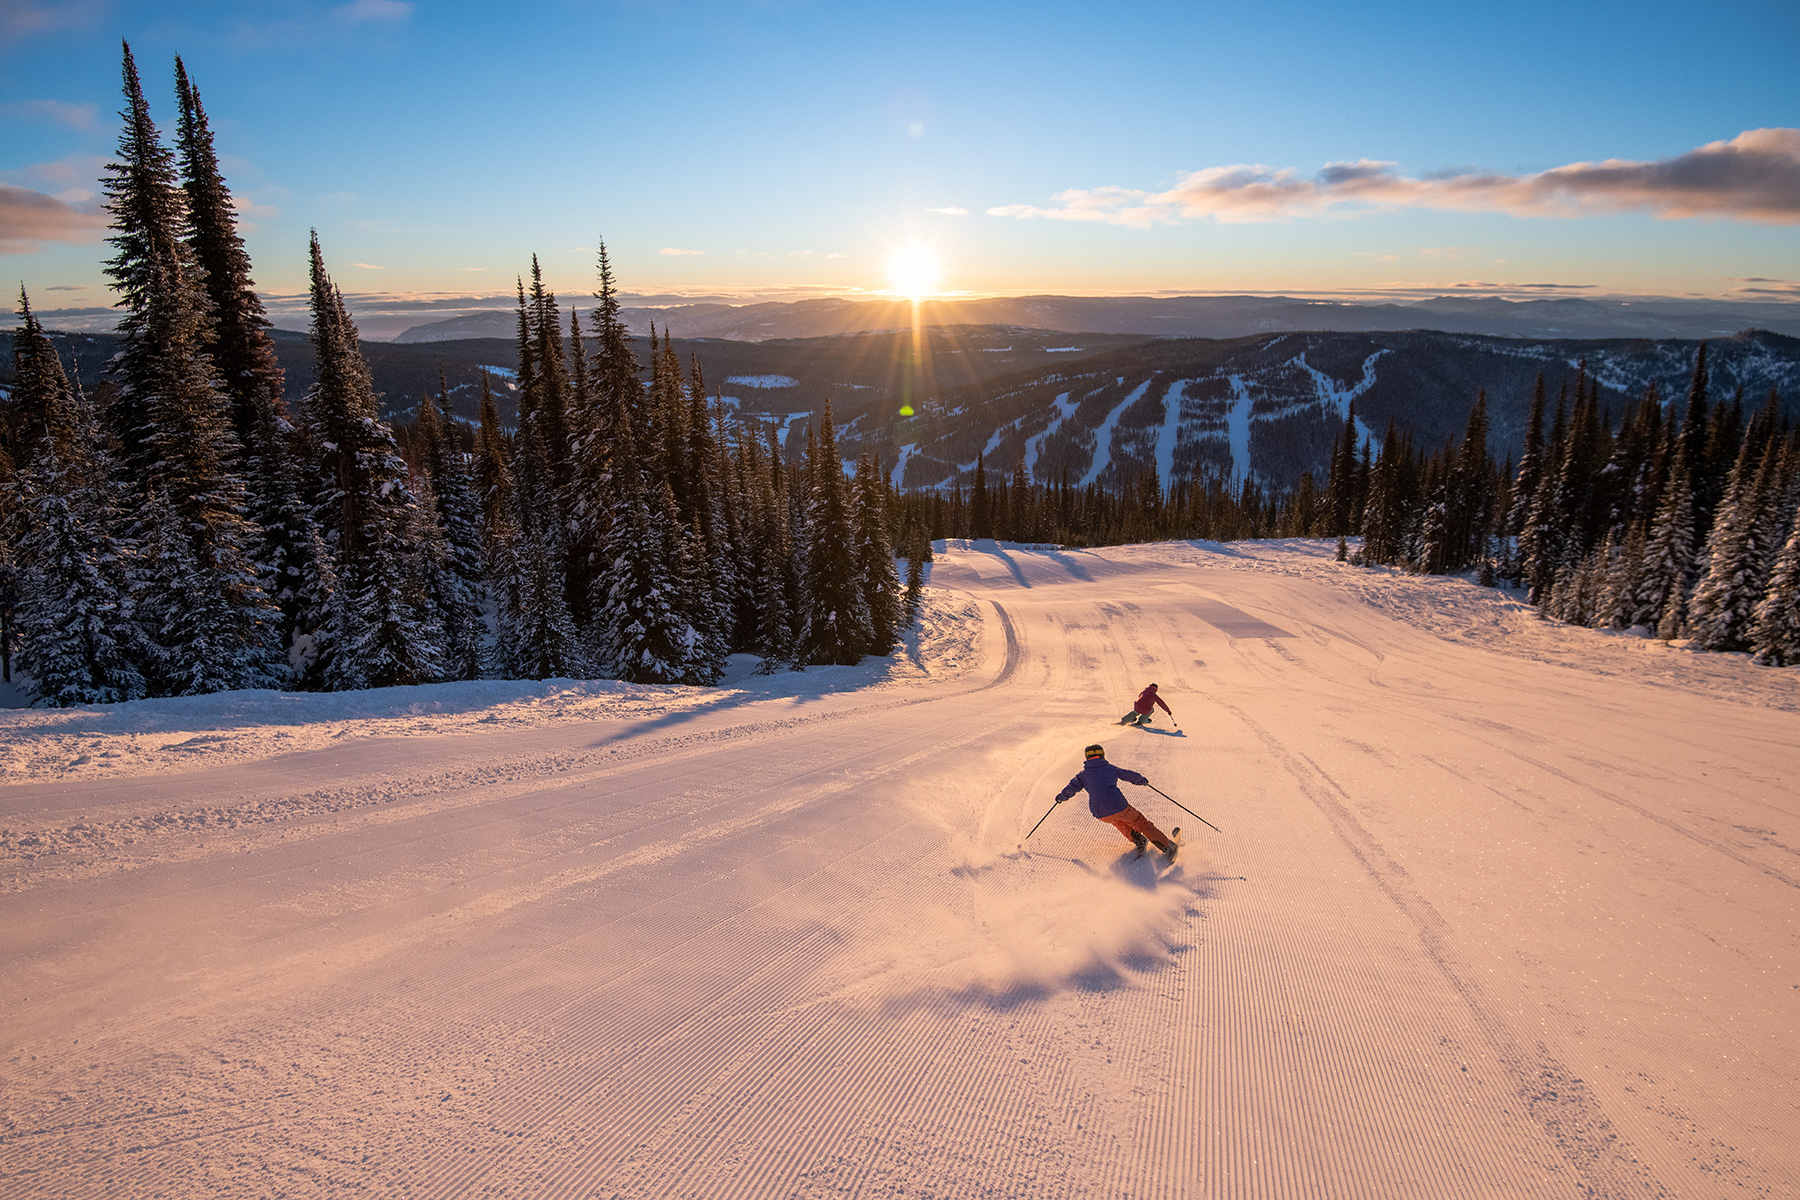 Skiing on Fresh Groomers at Sun Peaks Resort